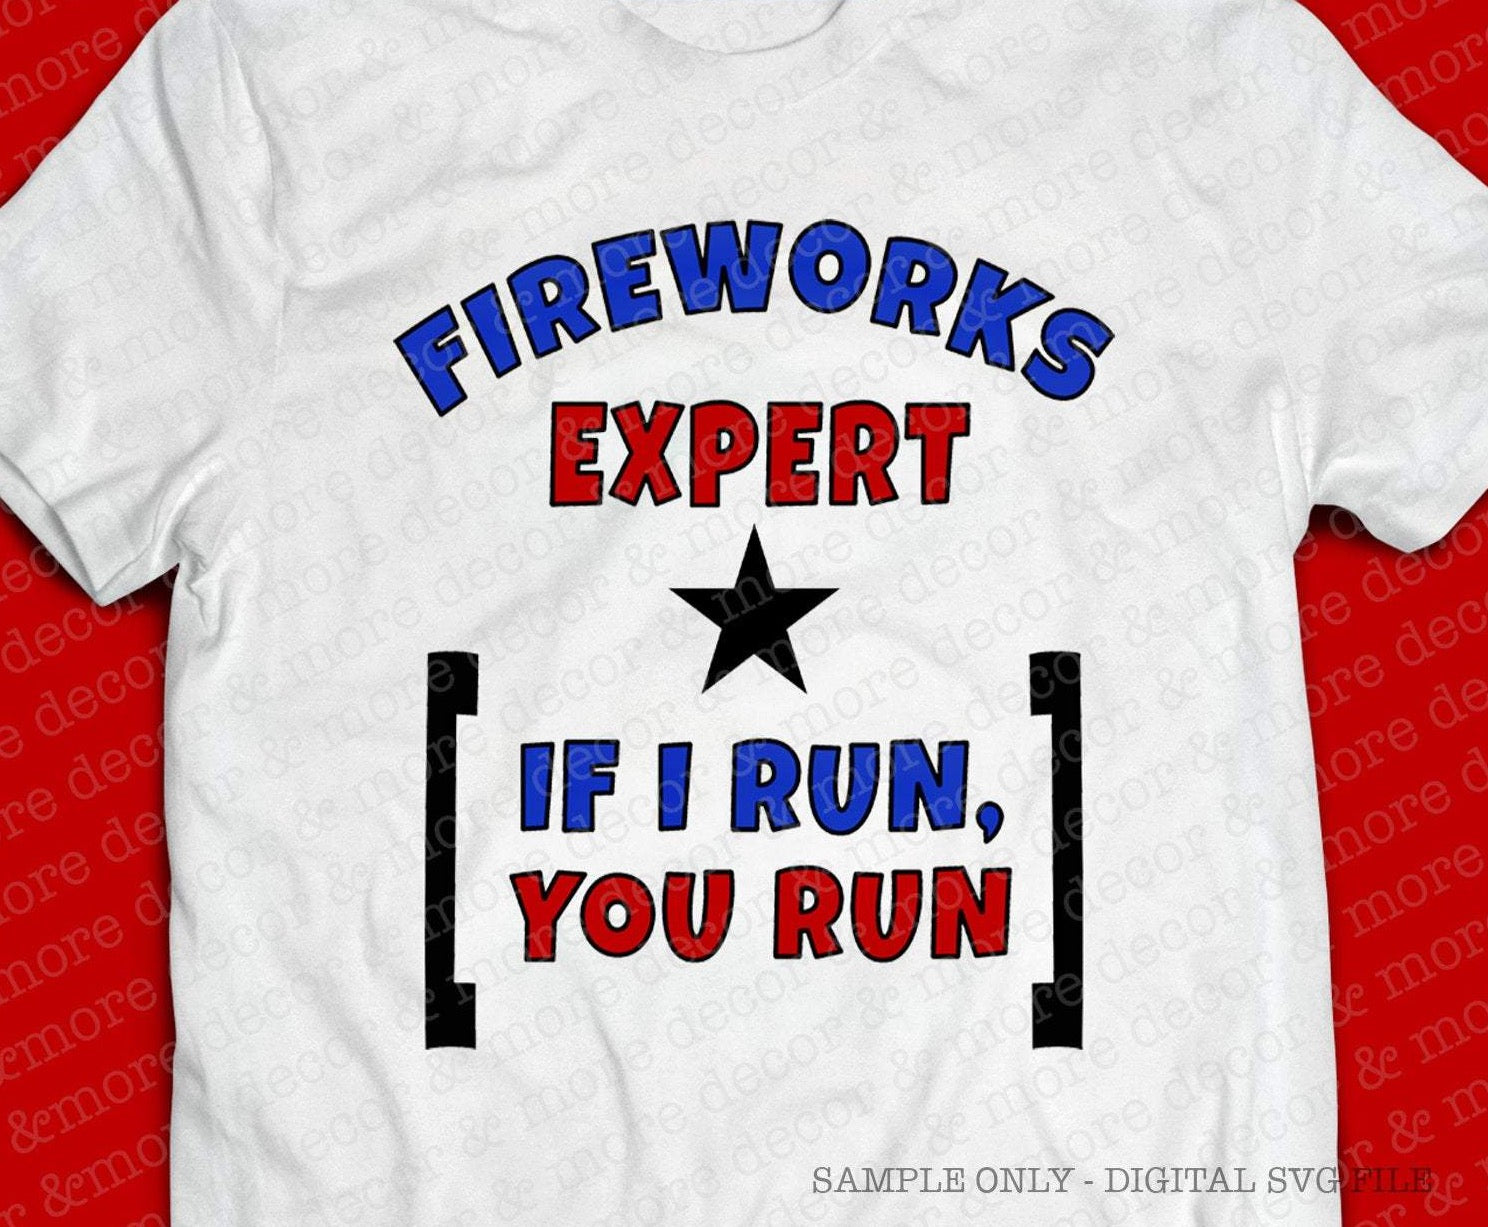 Funny 4th of July SVG, Fireworks Expert SVG, Funny July Fourth SVG, Independence Day SVG, Fireworks SVG Cut File